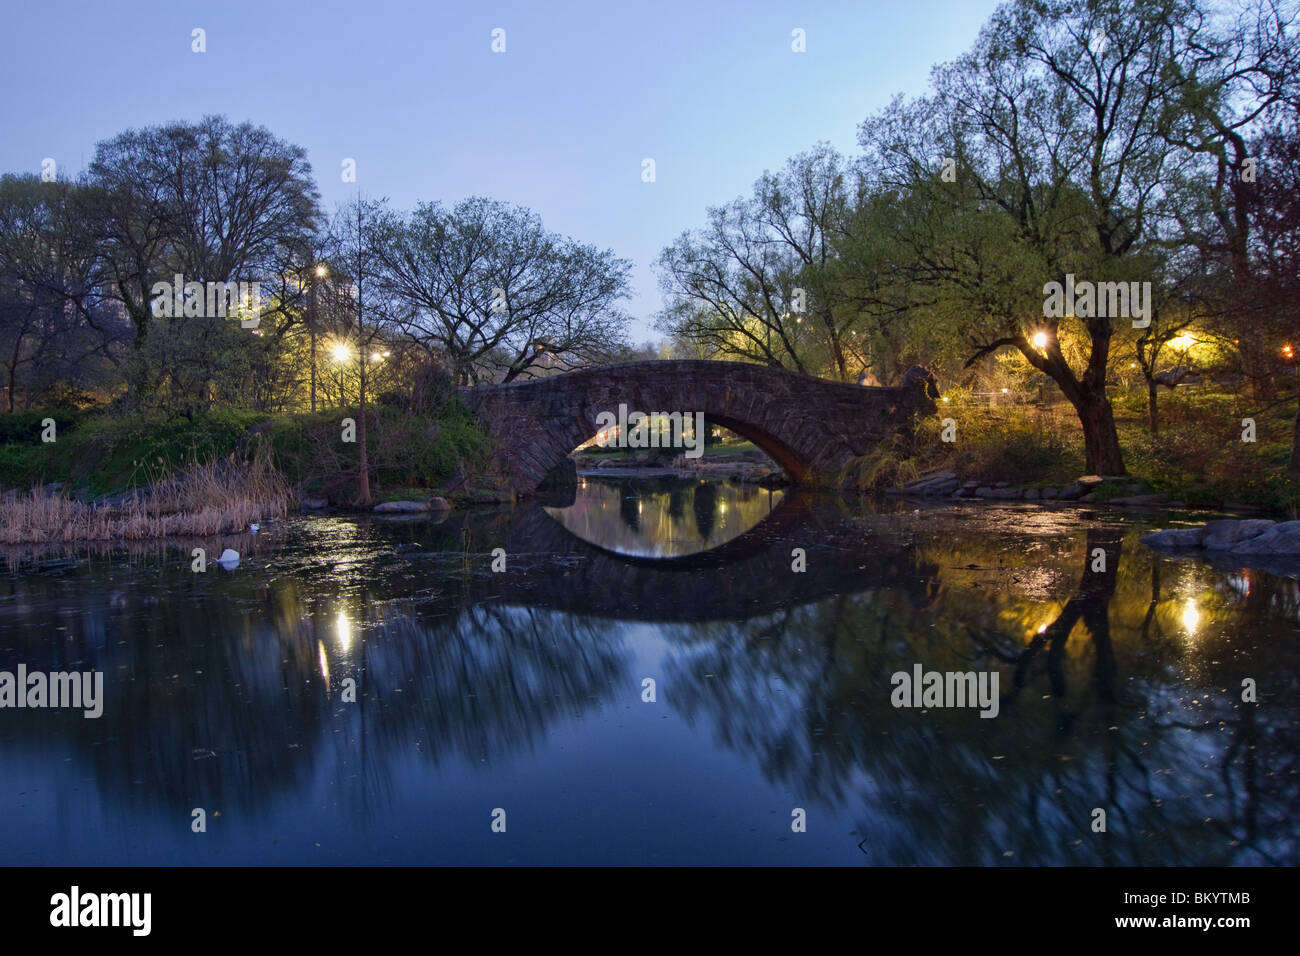 Look north across the Pond in Central Park at Gapstow Bridge at dawn. - Stock Image